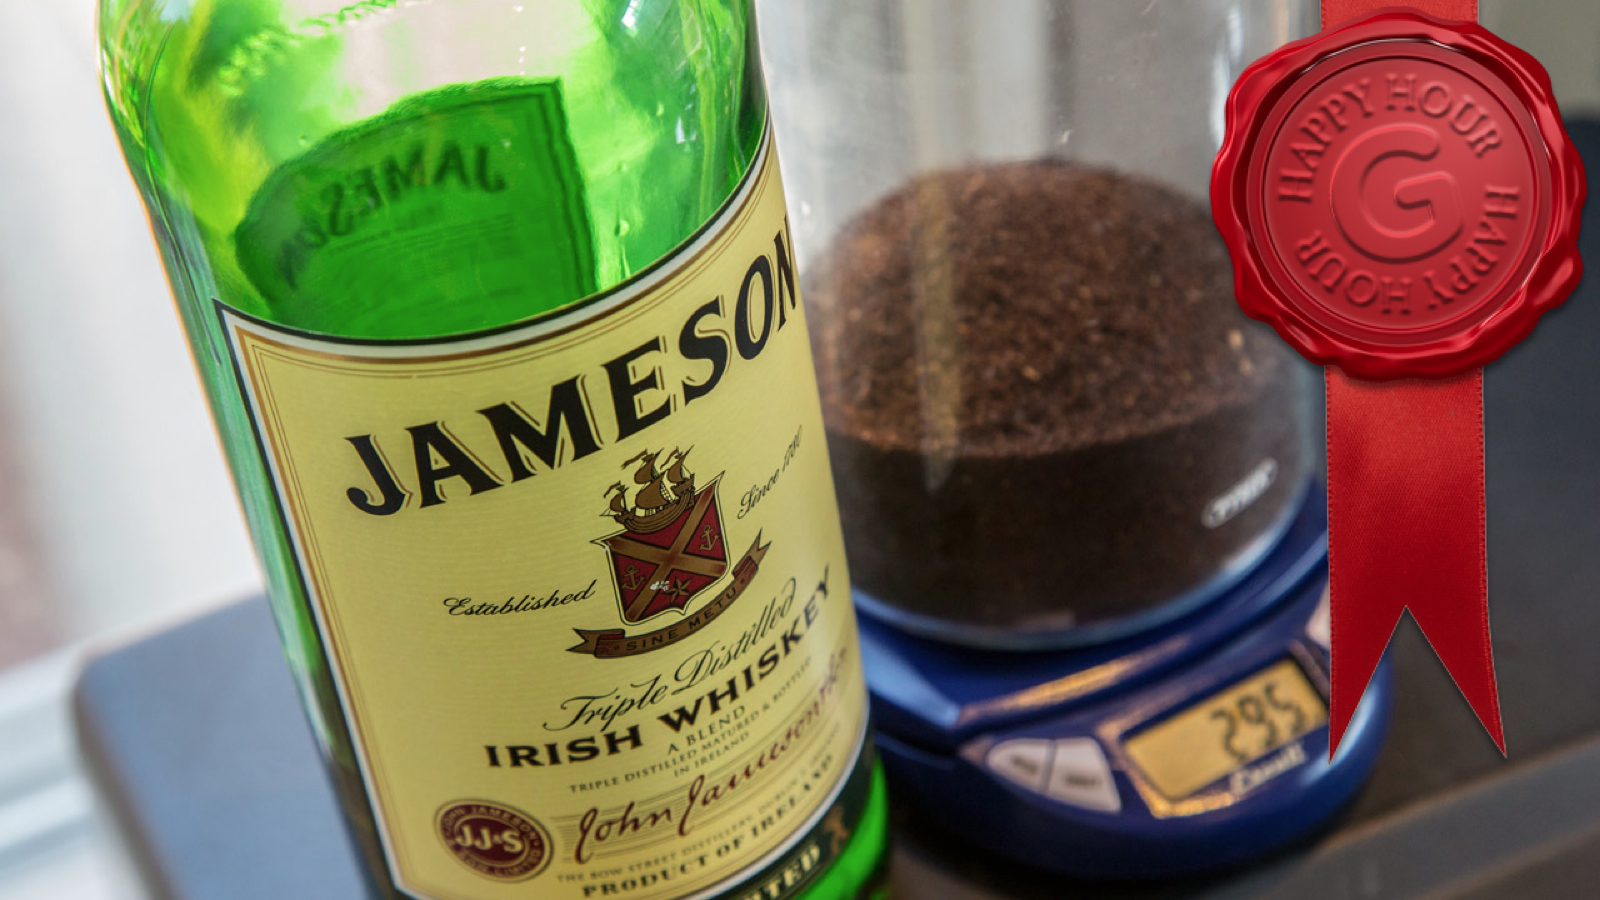 Click here to read Cold Brew Irish Coffee: The Best Part of Waking Up Drunk